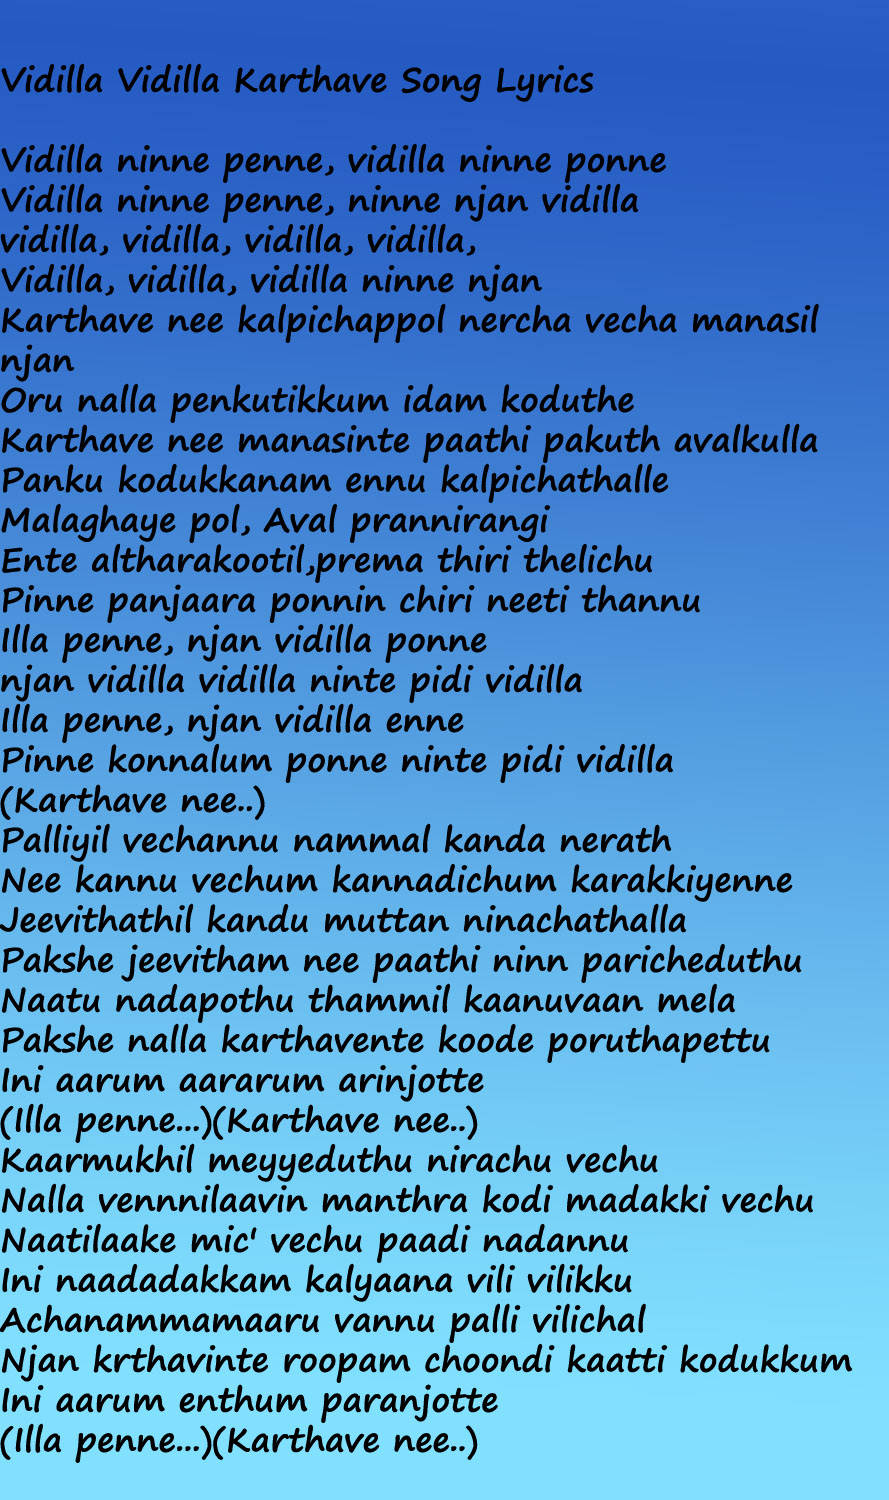 Vidilla+Vidilla+Karthave+Song+Lyrics.jpg